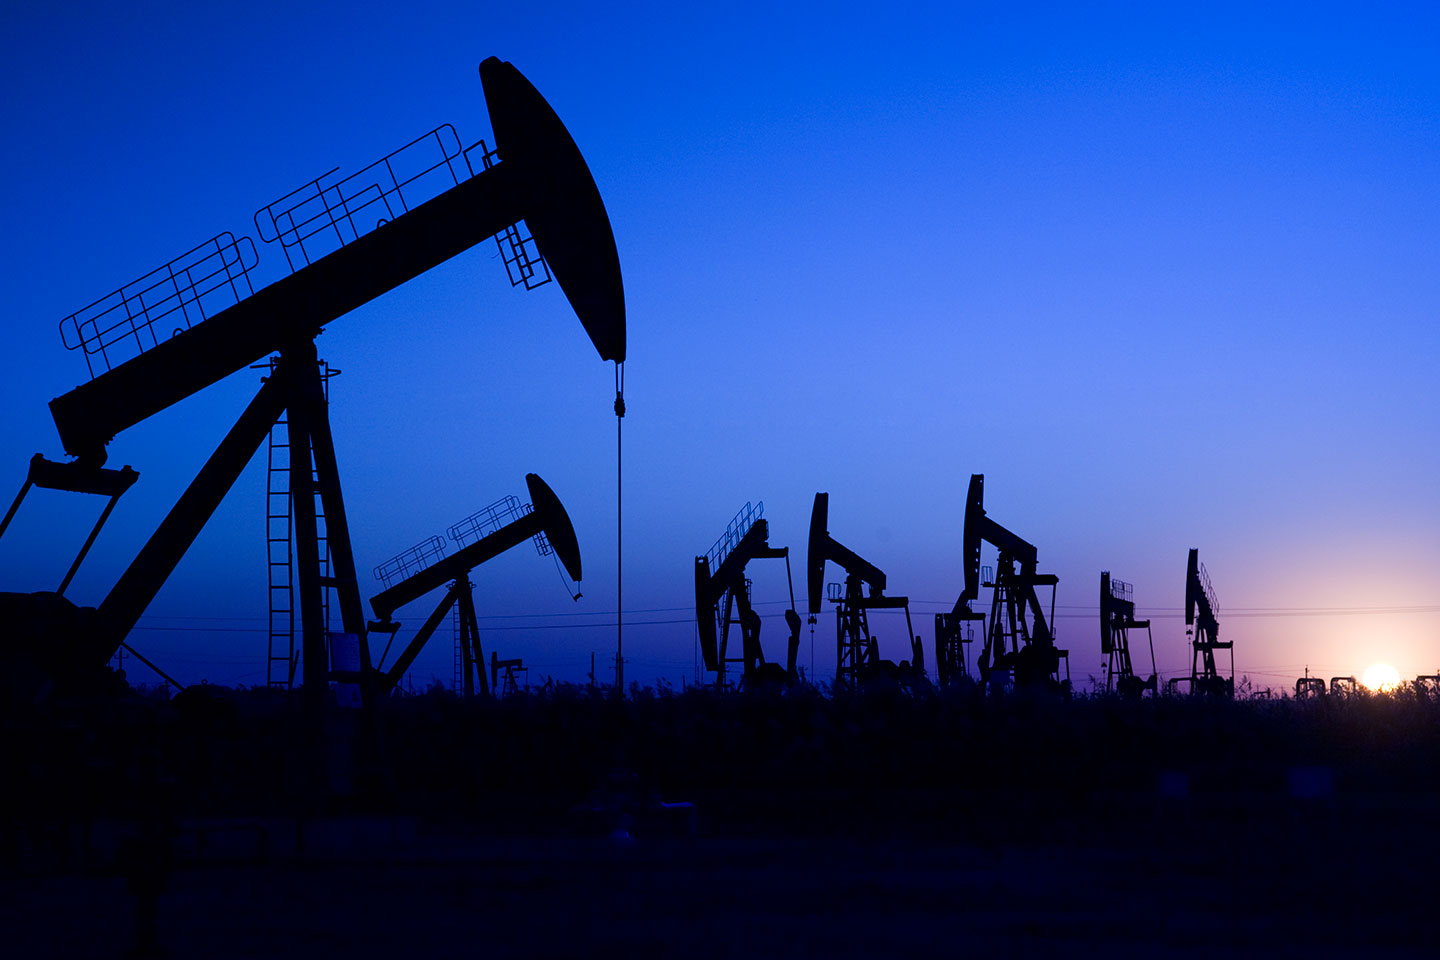 Oil price rises towards $70 on reduced USA drilling activity